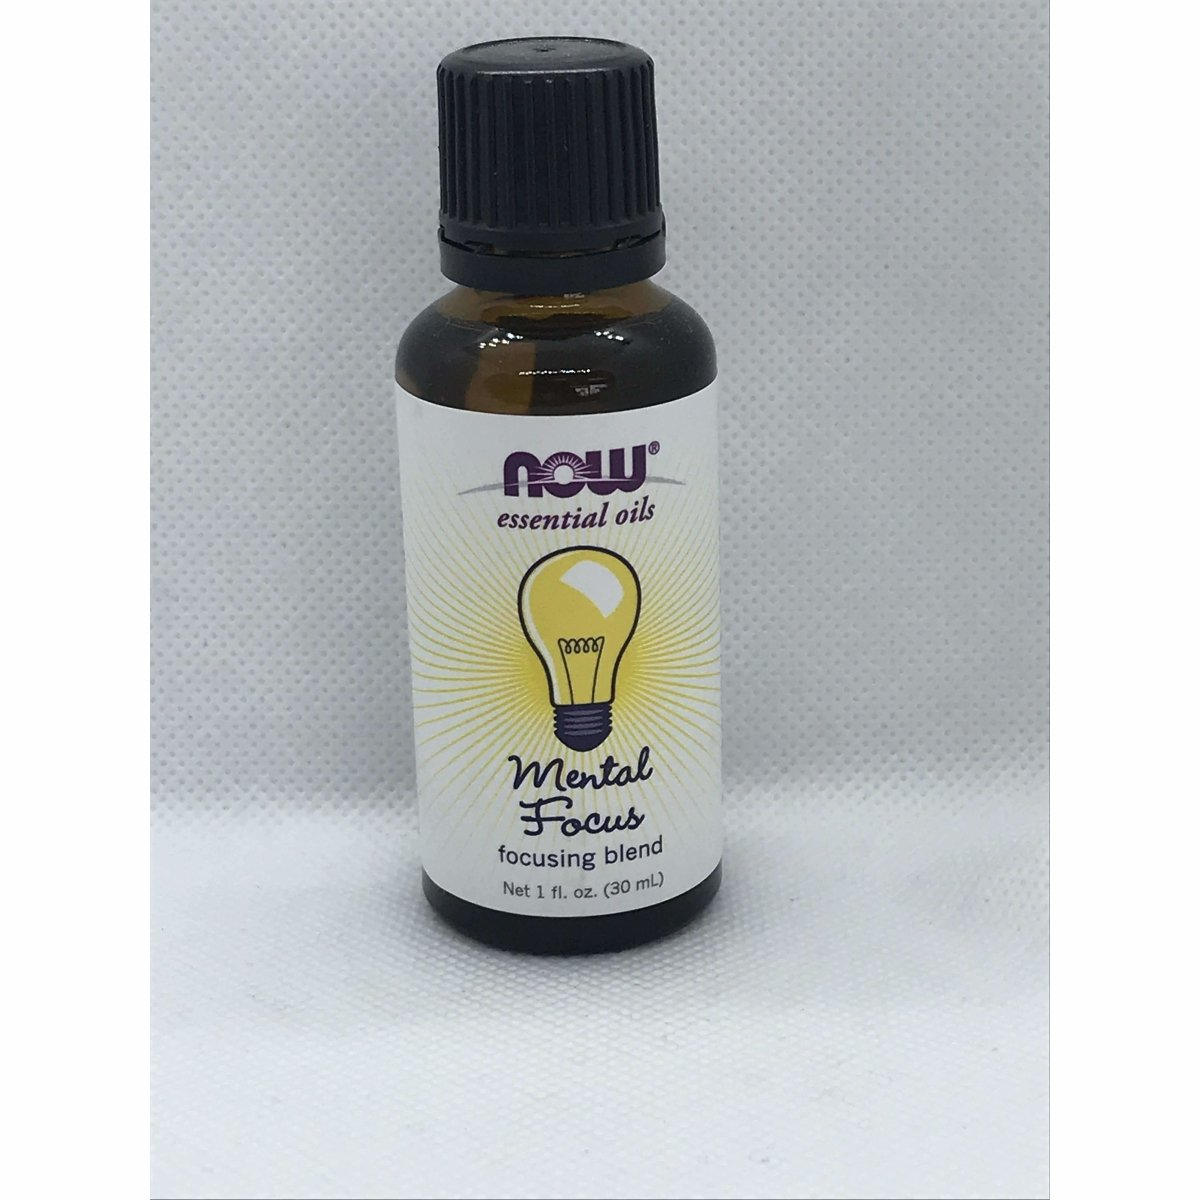 Mental Focus Oil 100% Pure 1 Oz